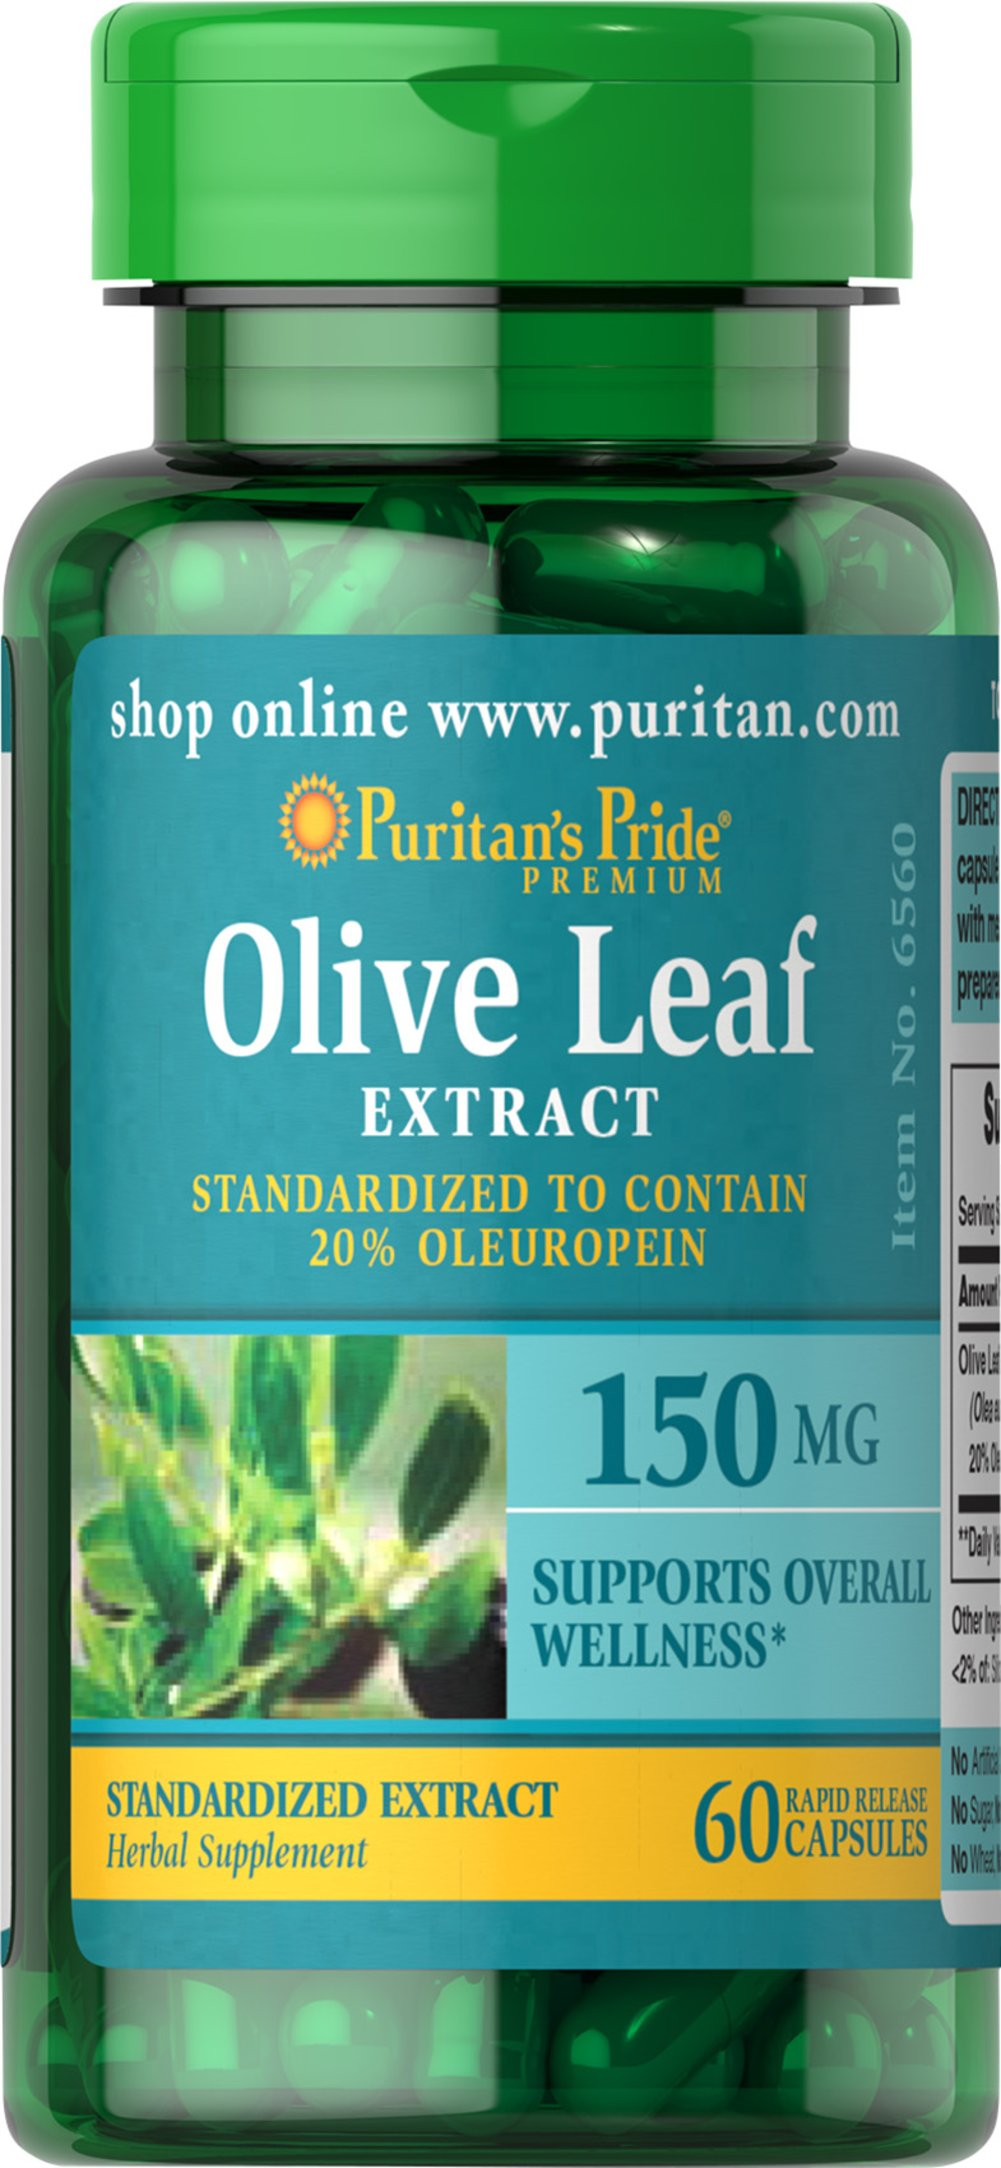 Olive Leaf Standardized Extract 150 mg <p>Our Olive Leaf Extract is derived from the leaves of the Mediterranean olive tree. This extract is standardized for 20% Oleuropein, a powerful phytonutrient. Olive leaves have been used for overall well-being for thousands of years by people in countries bordering the Mediterranean.</p> 60 Capsules 150 mg $7.99